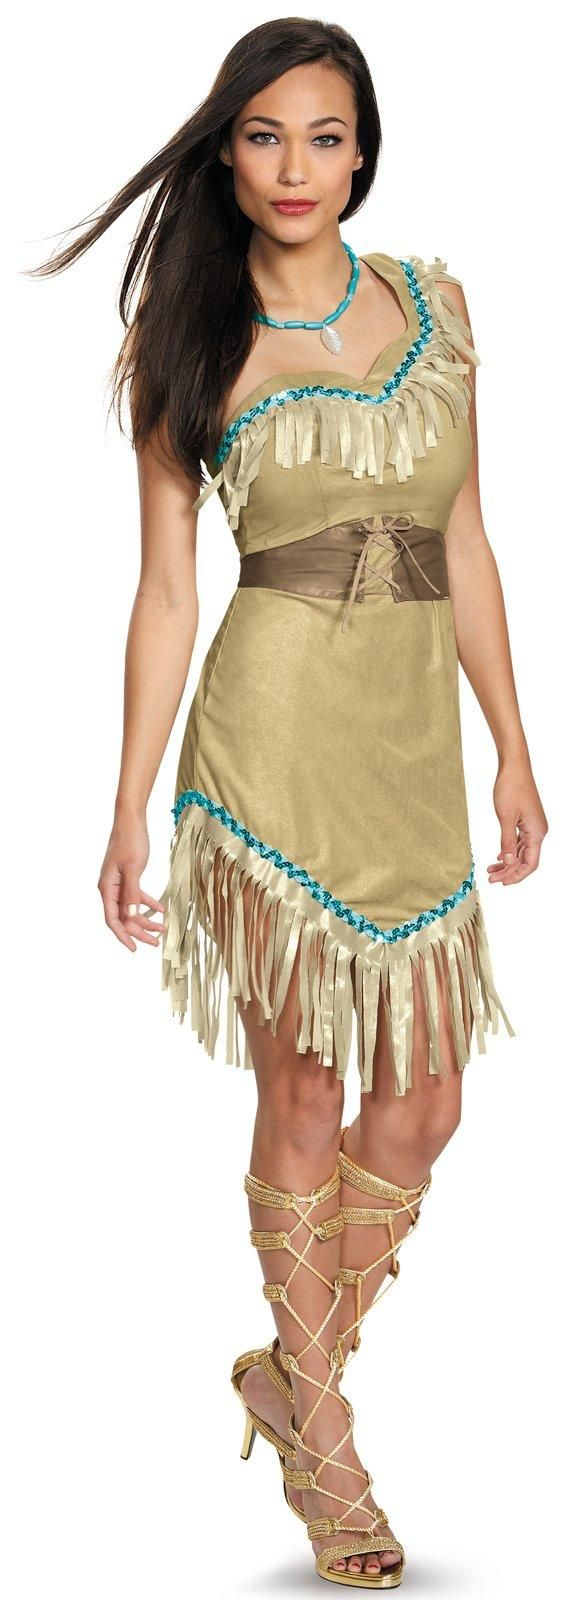 best 25 pocahontas costume ideas on pinterest. Black Bedroom Furniture Sets. Home Design Ideas